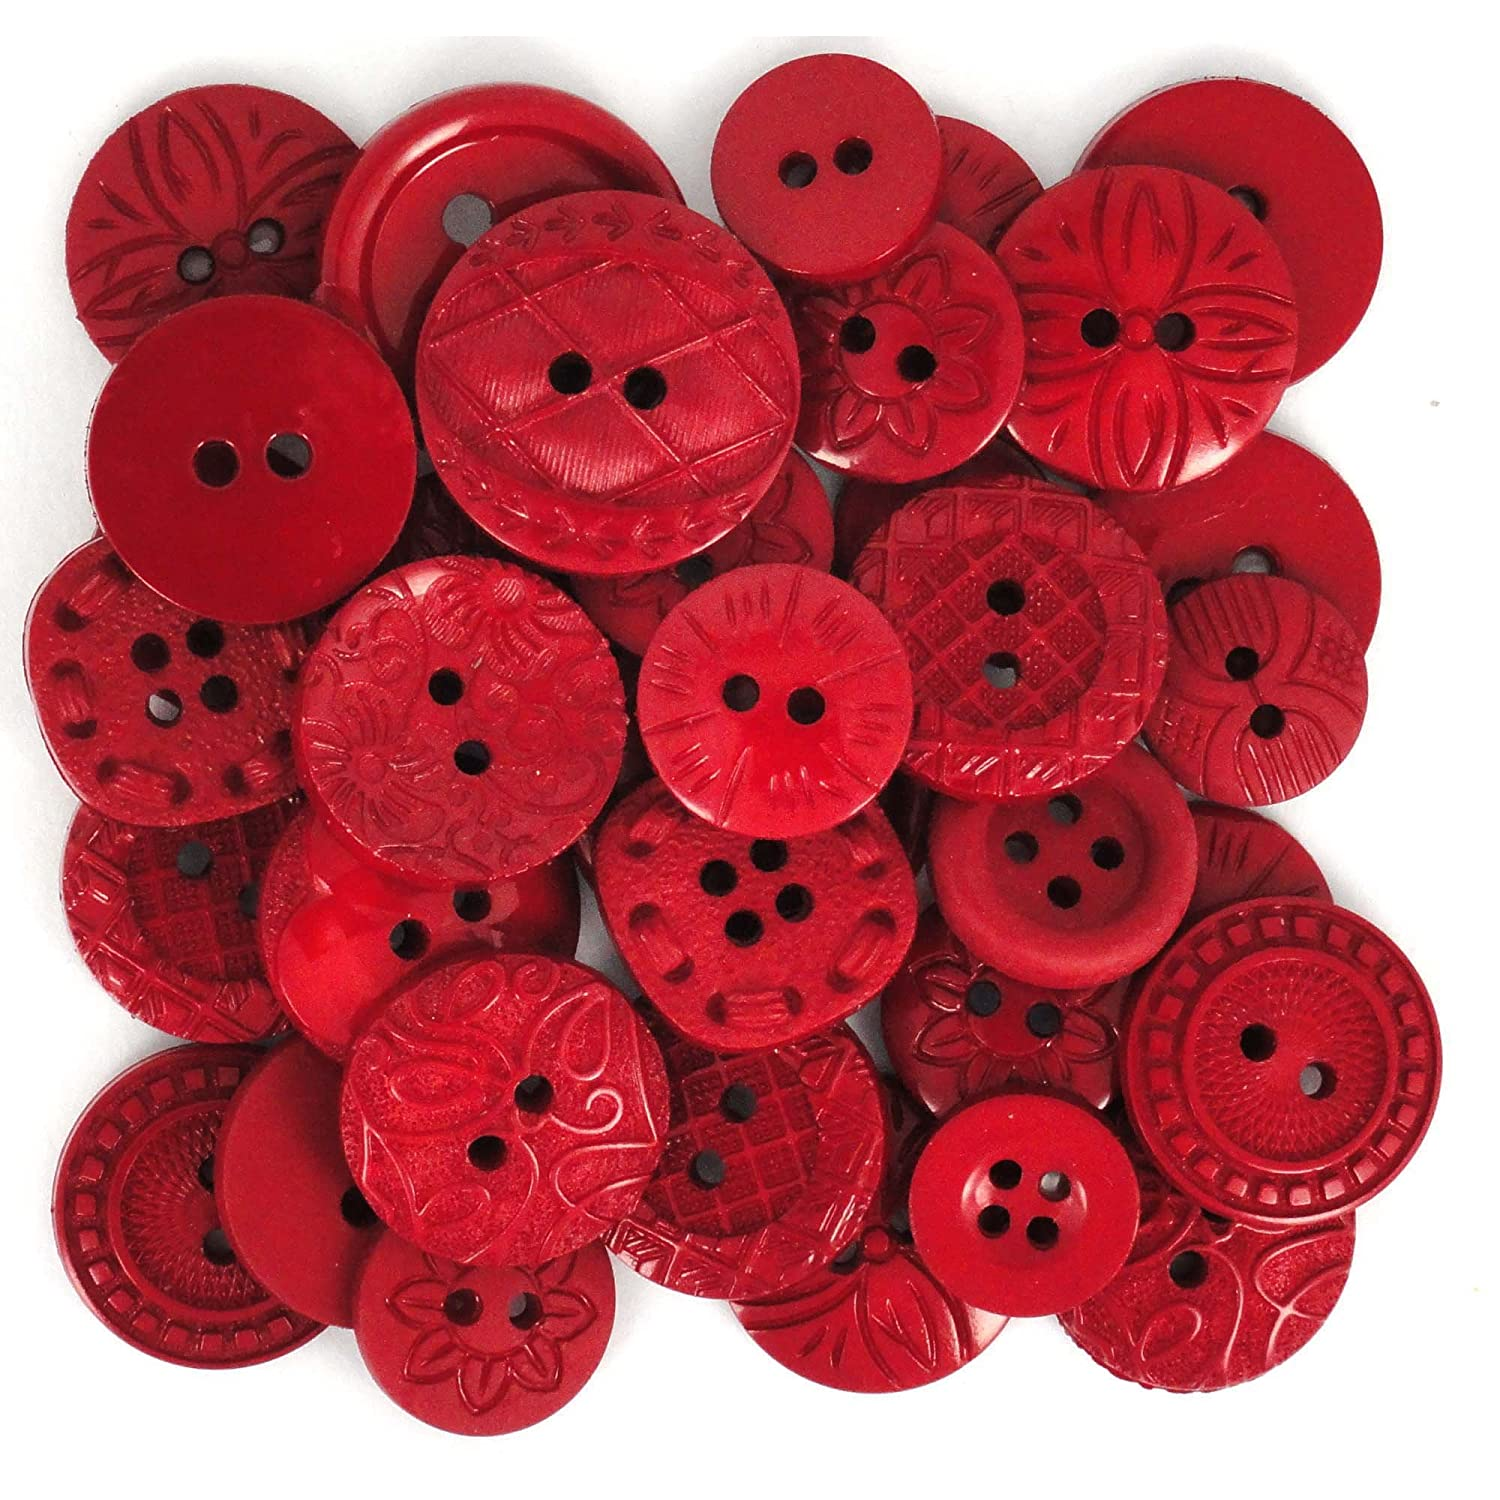 Jesse James (1-Pack) Dress It Up Buttons The Color Me Collection #0059 Color Me Red 0059-1P by Jesse James   B0018N1XTK